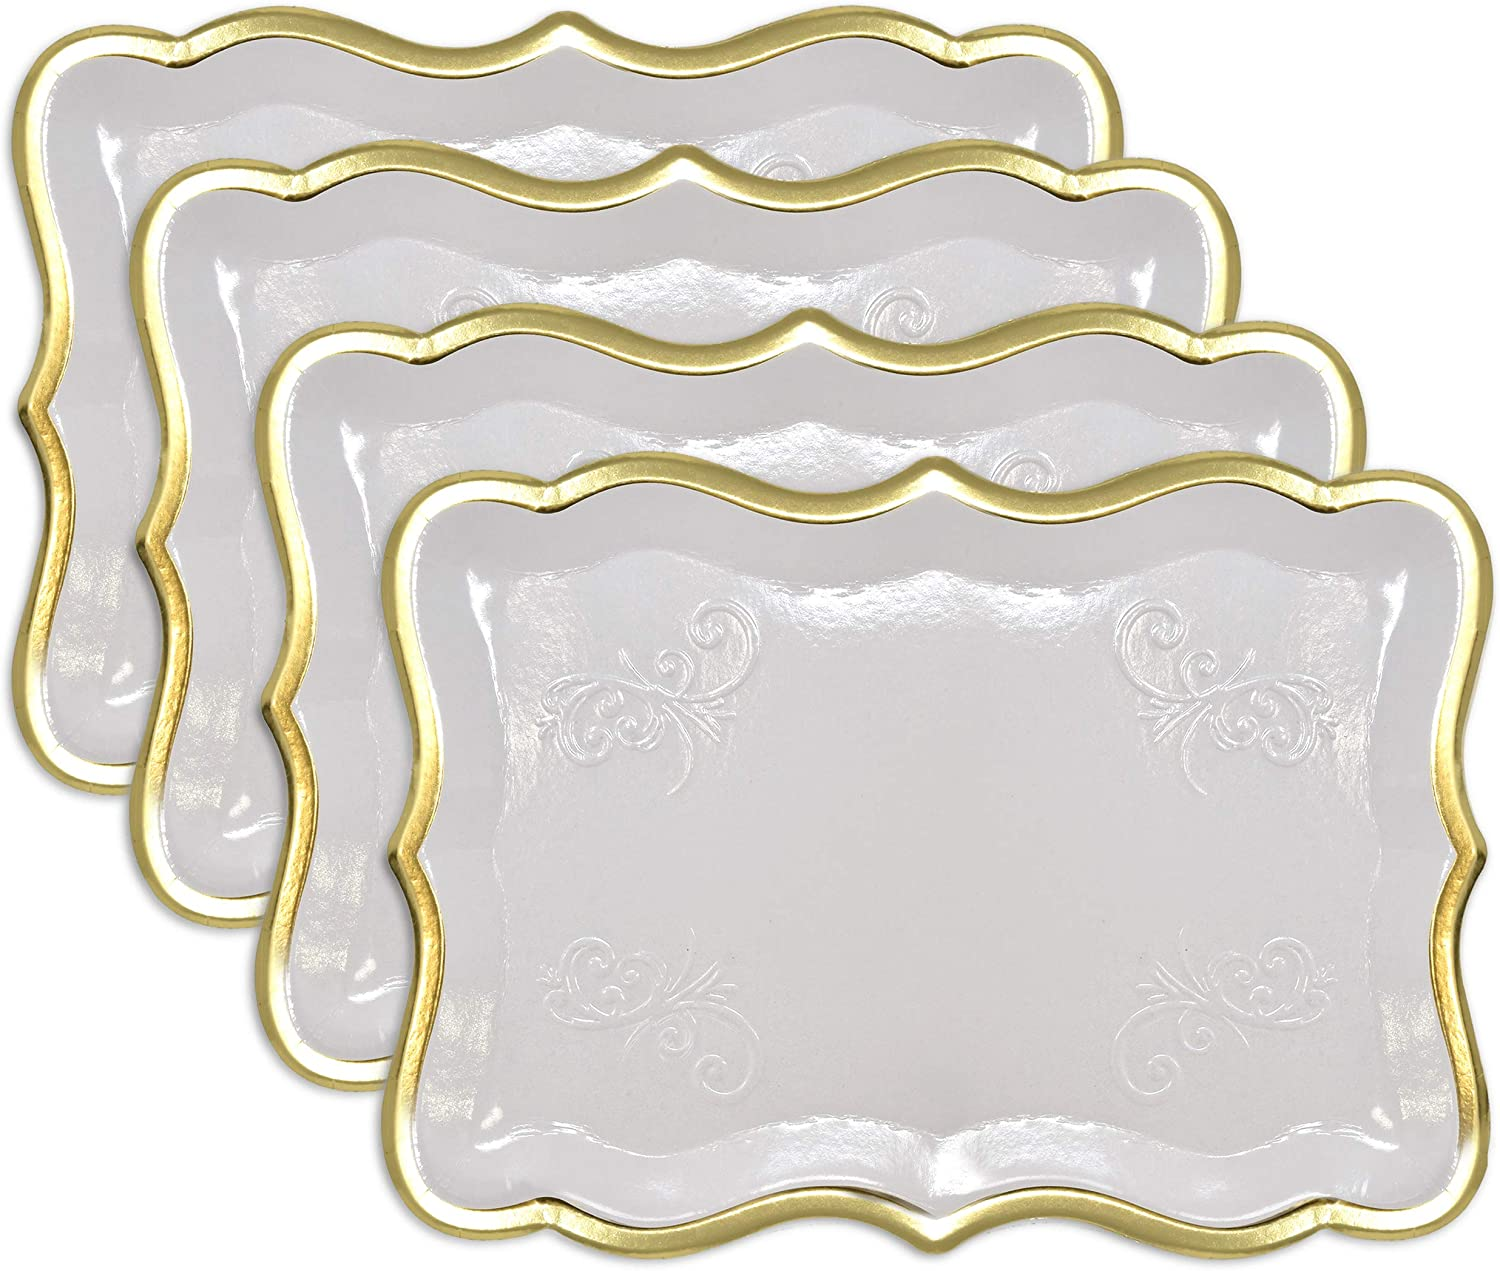 "10 White Rectangle Trays with Gold Rim Border for Elegant Dessert Table Serving Parties 9"" X 13"" Heavy Duty Disposable Paper Cardboard for Platters, Cupcake Display, Birthday Party, Weddings Food Safe"